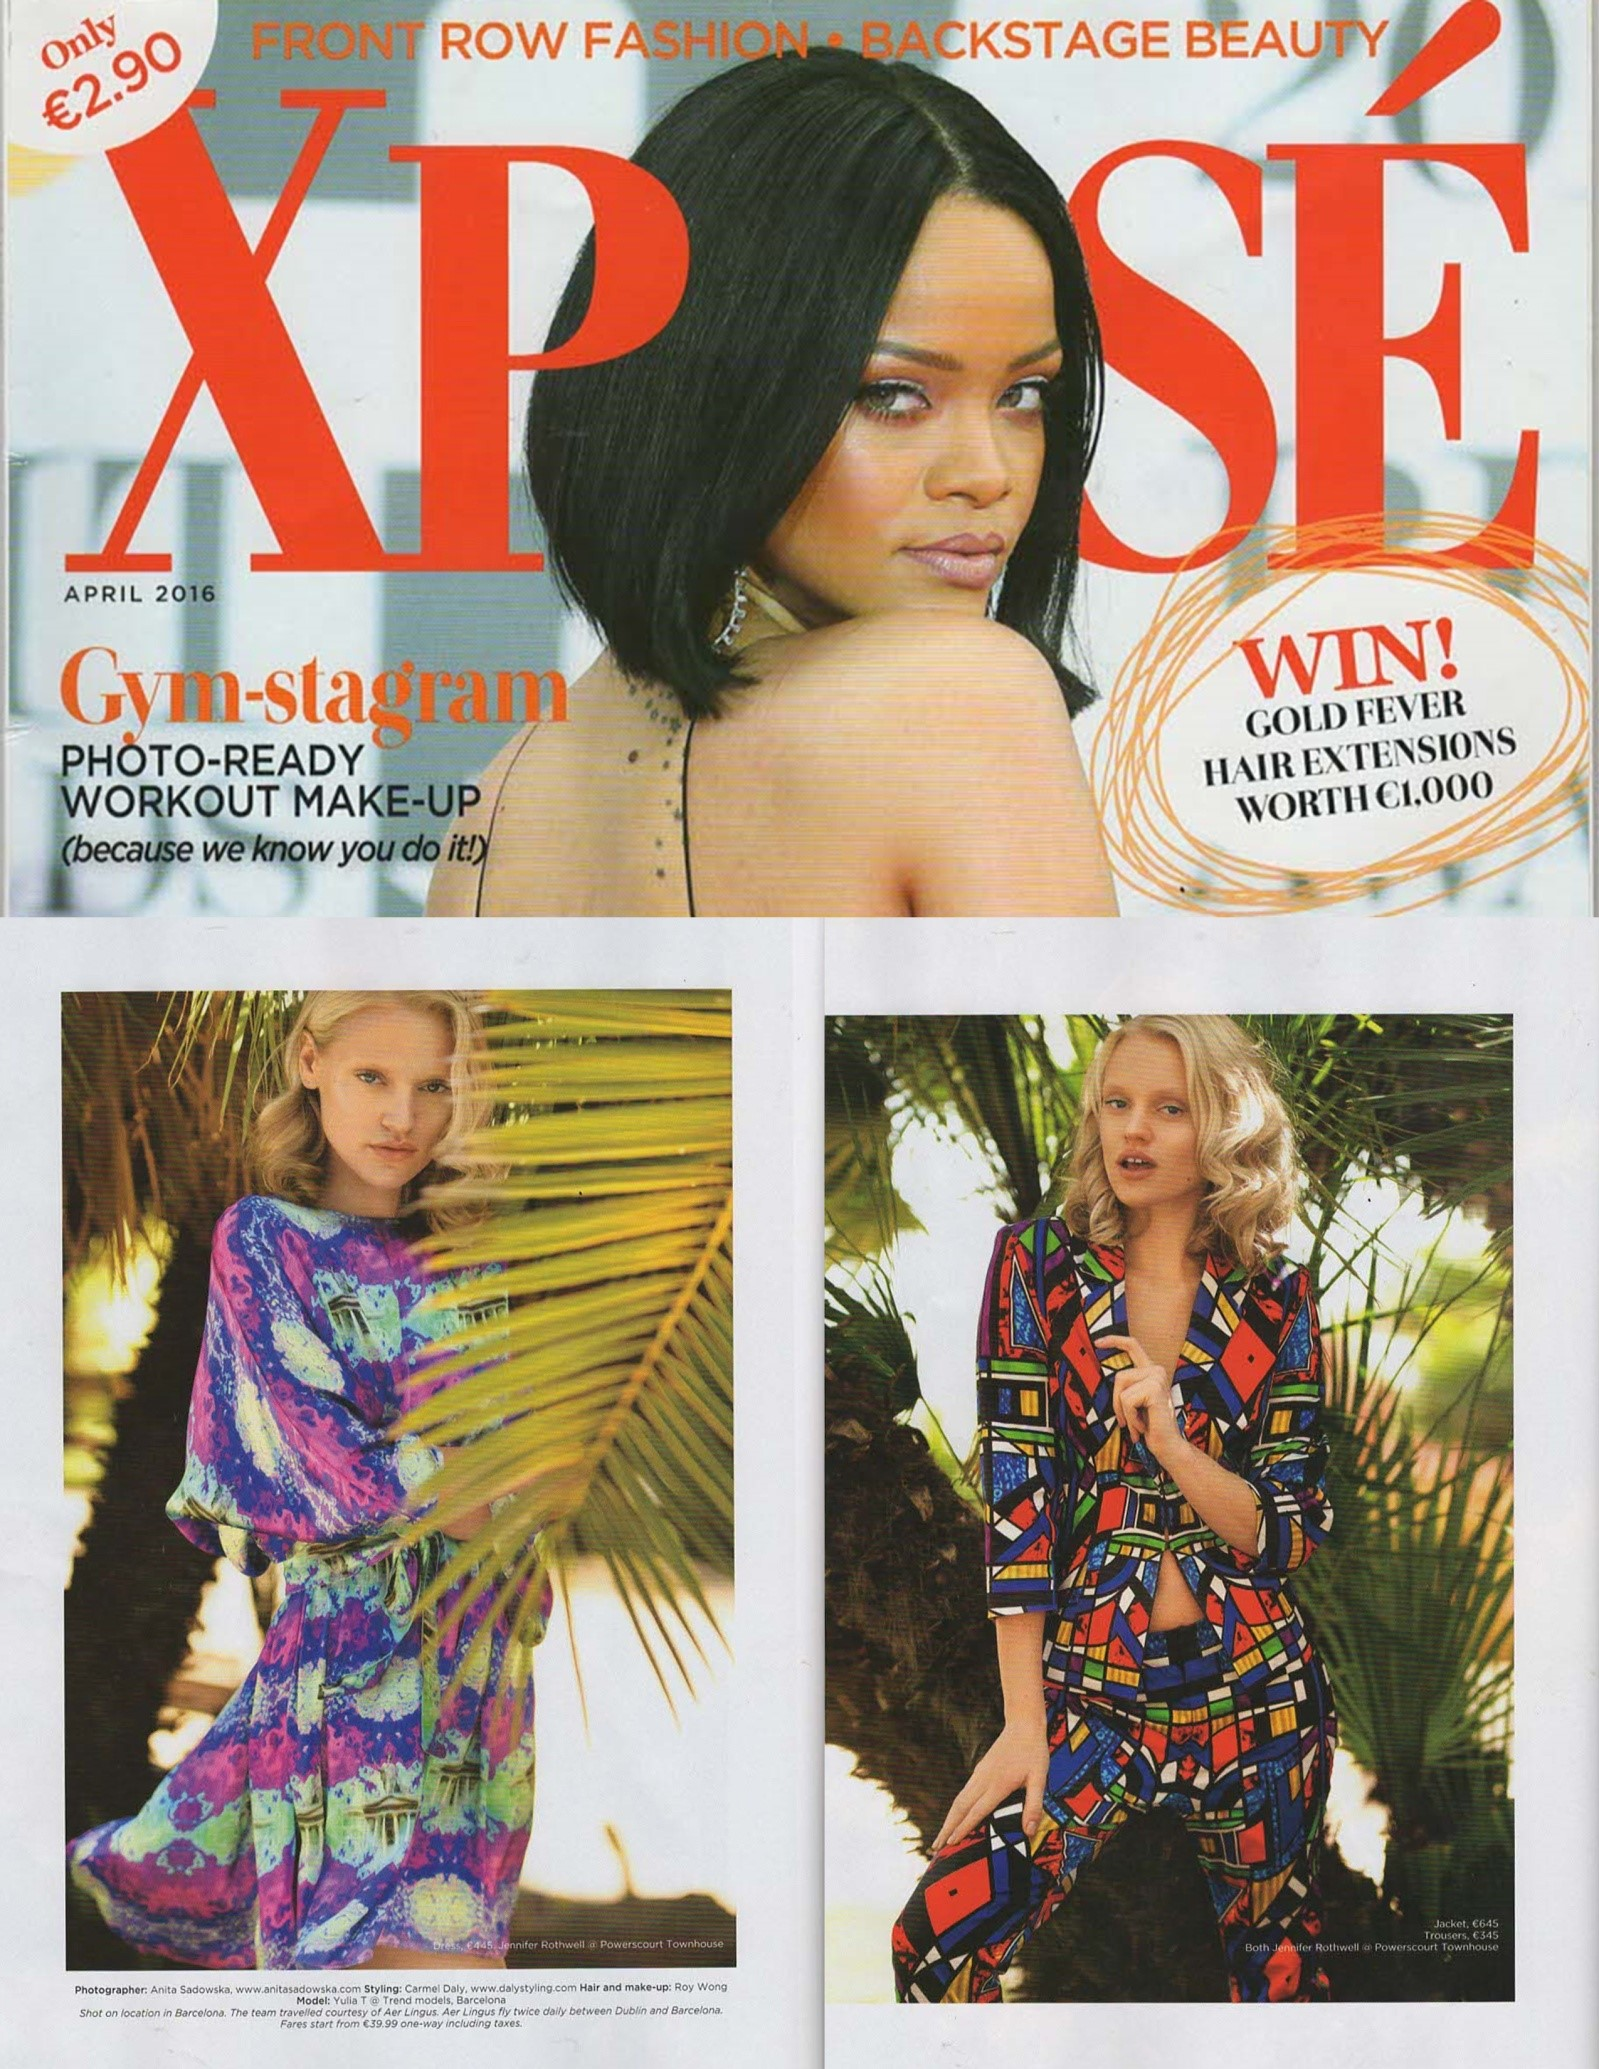 Two of our beutiful garments appeared in Xpose Magazine of April 2016, i.e. the Geometric Stained Glass woman suit and the GPO dress